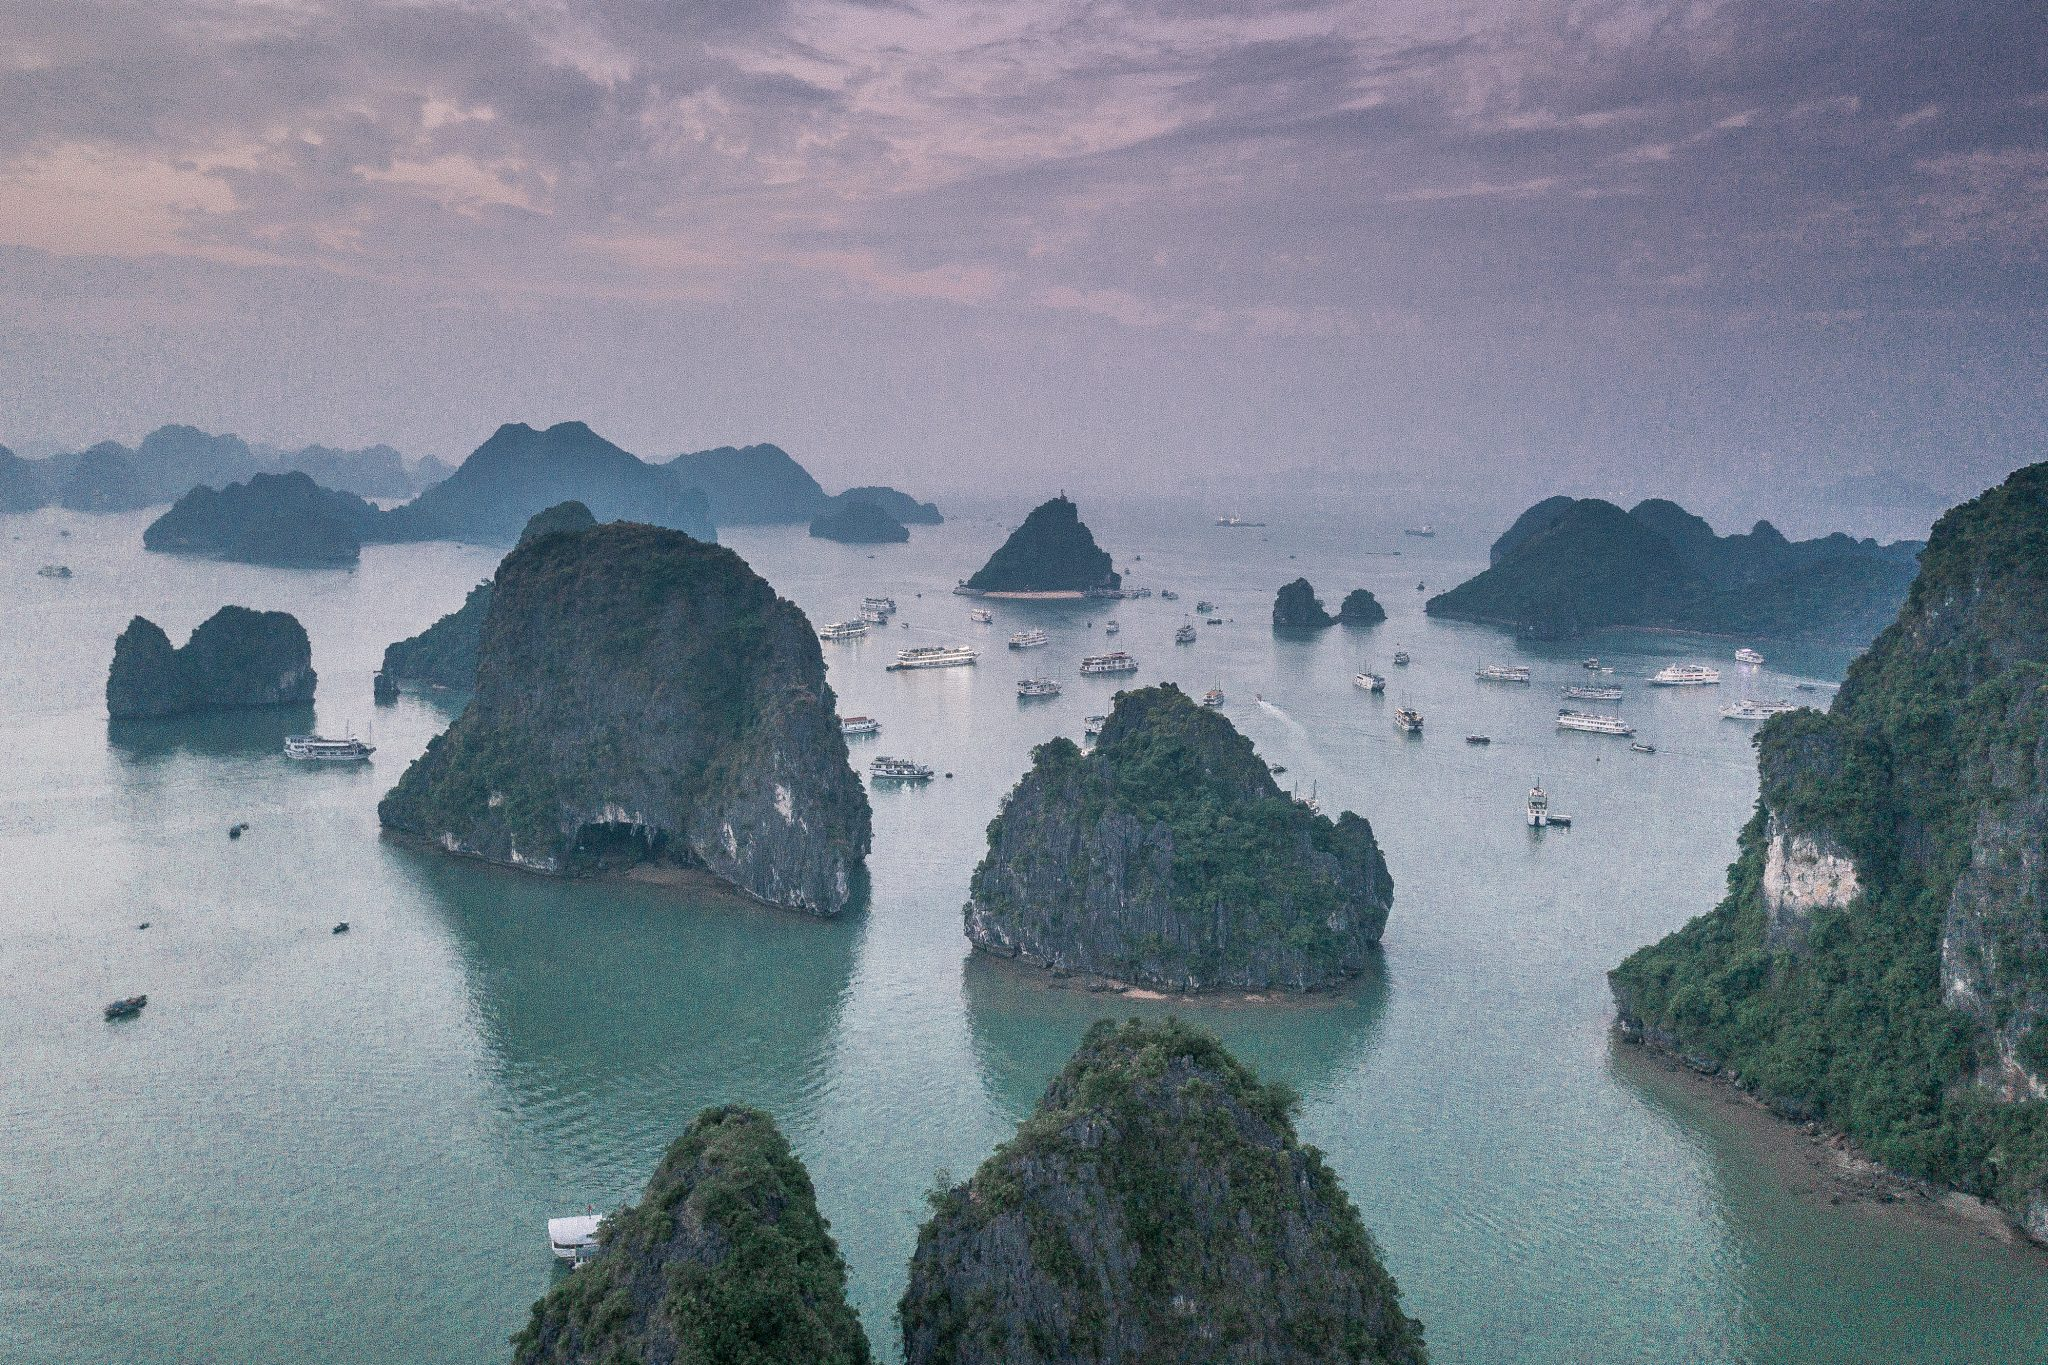 Halong Bay Cruise Guide